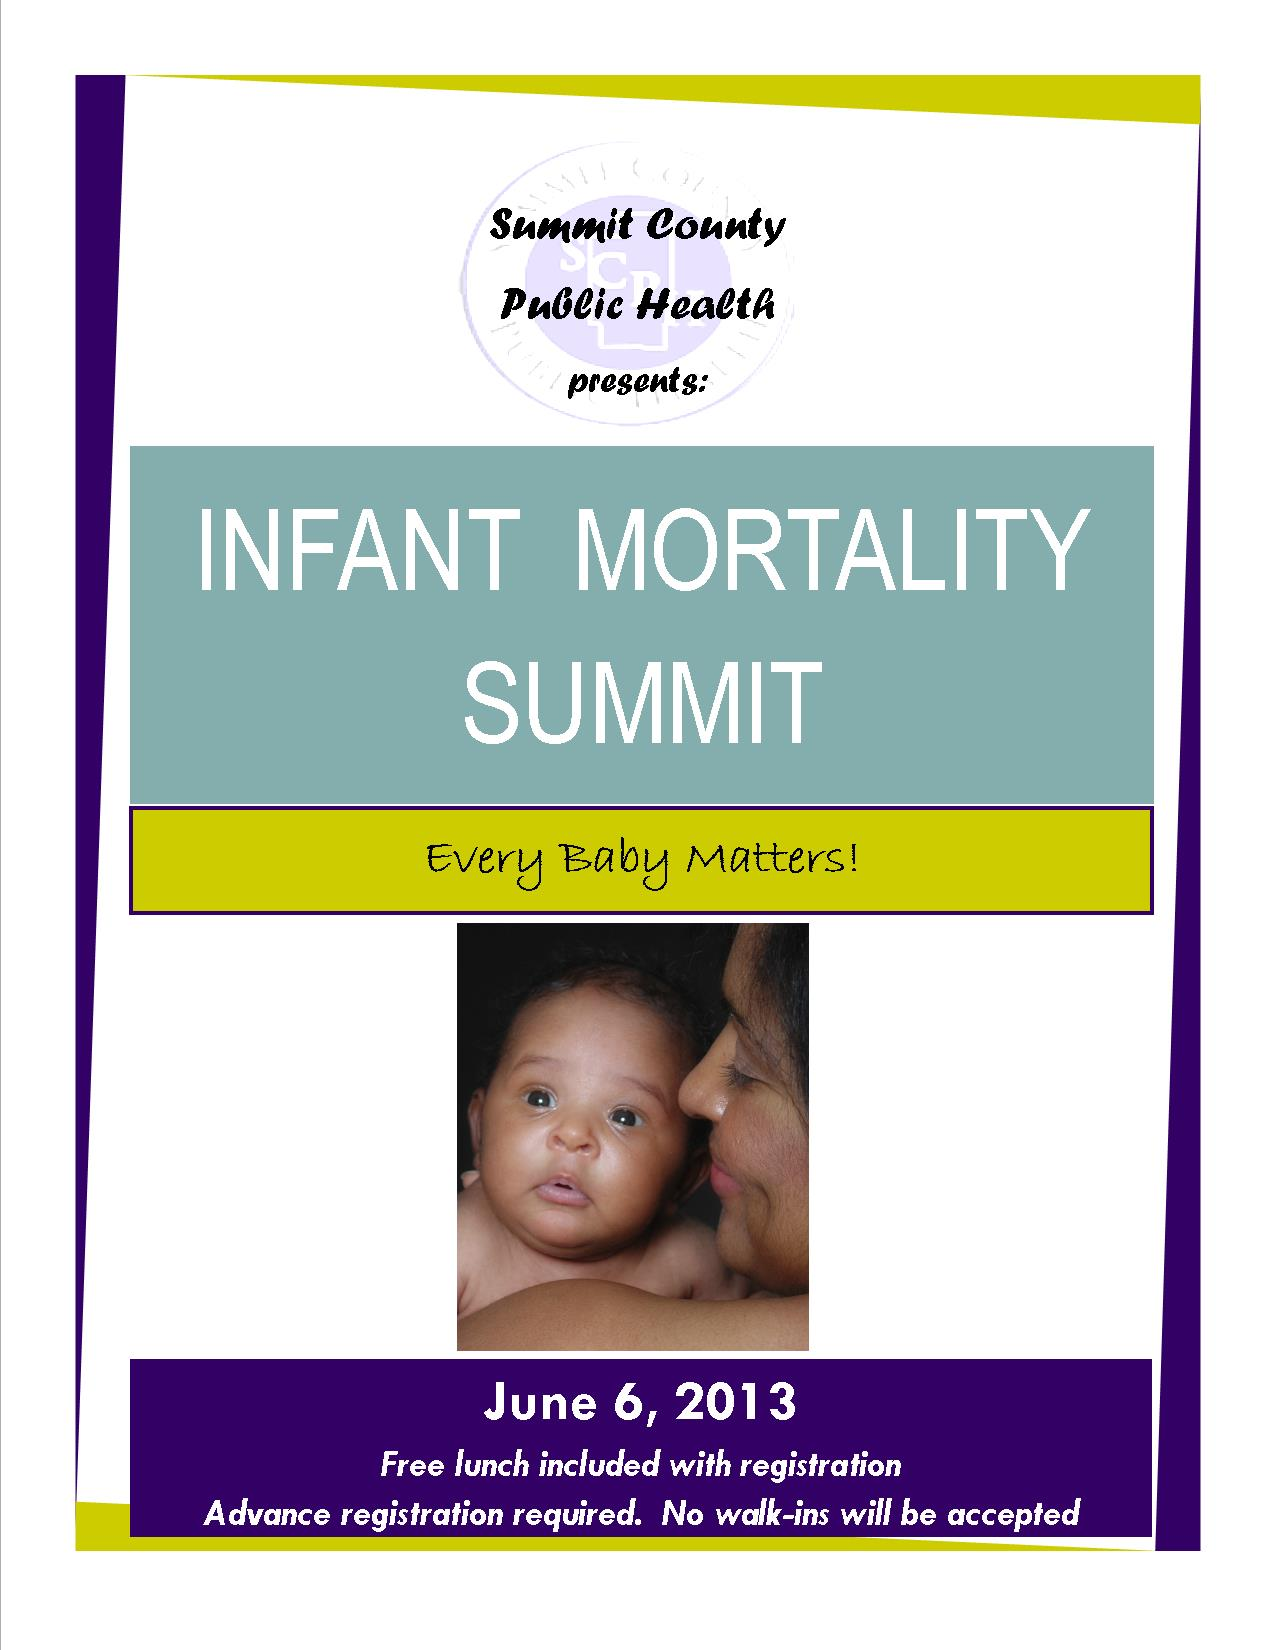 Infant Mortality Summit flyer